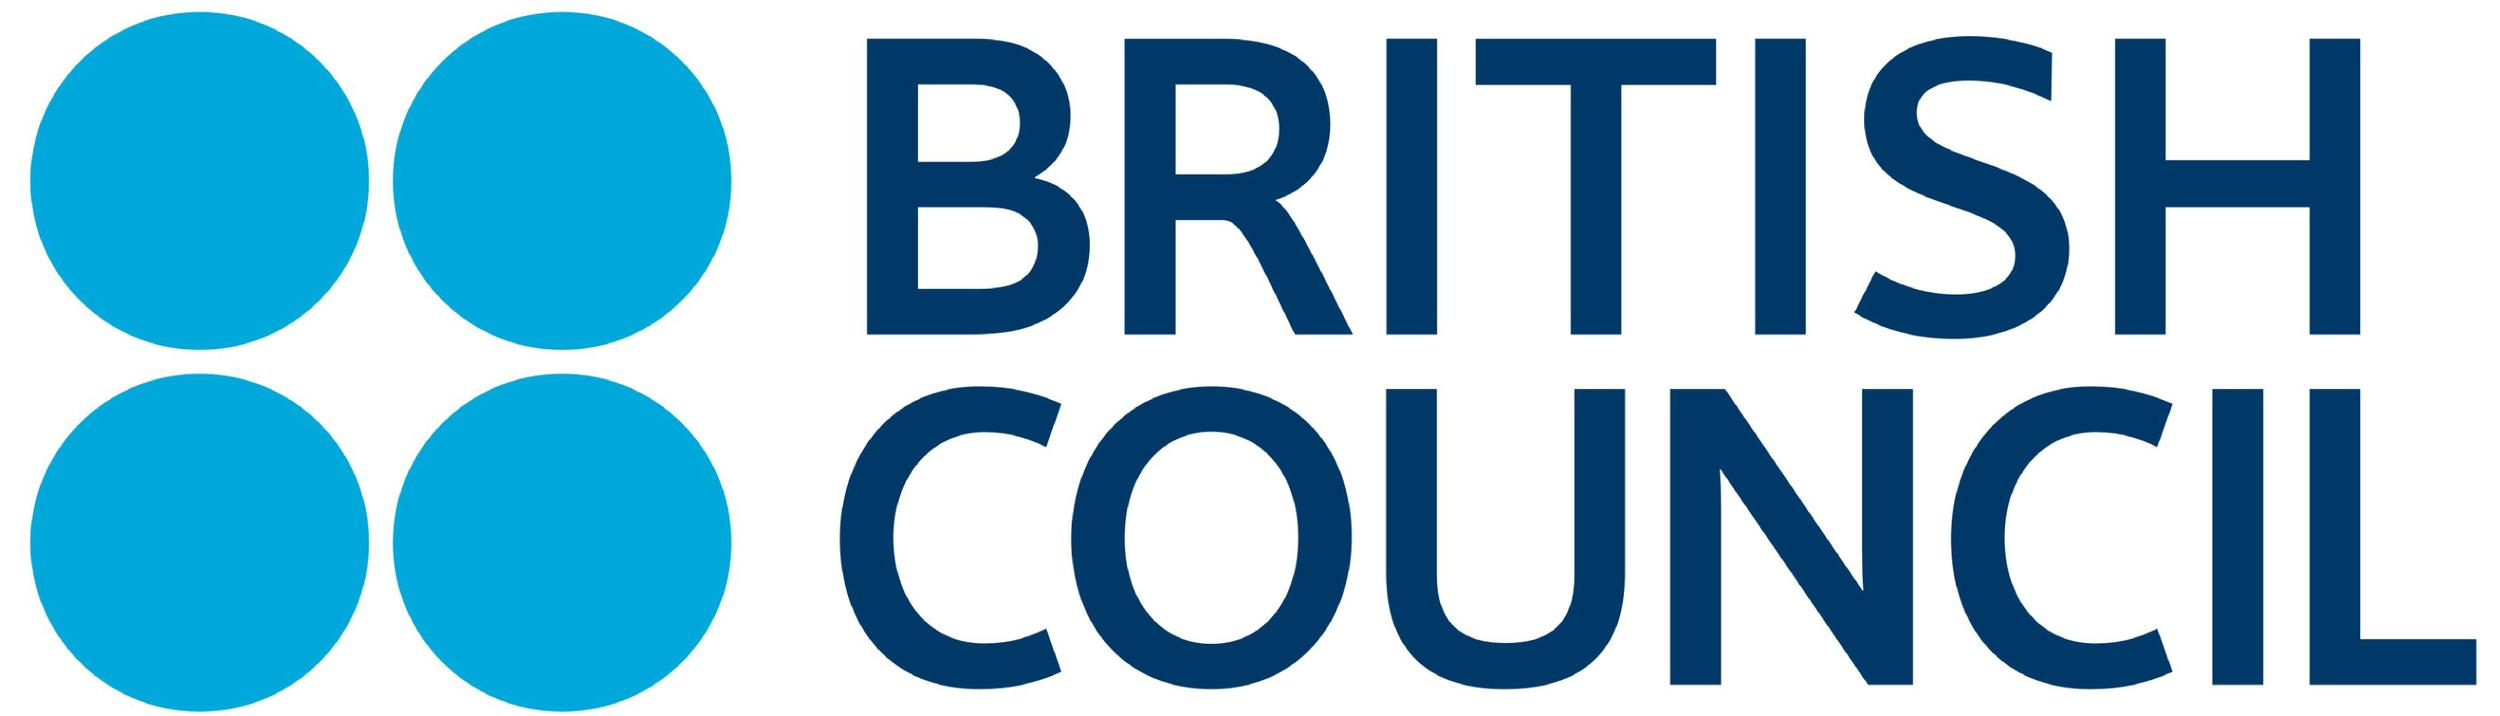 british-council-logo-2-color-2-page-001-hr.jpg